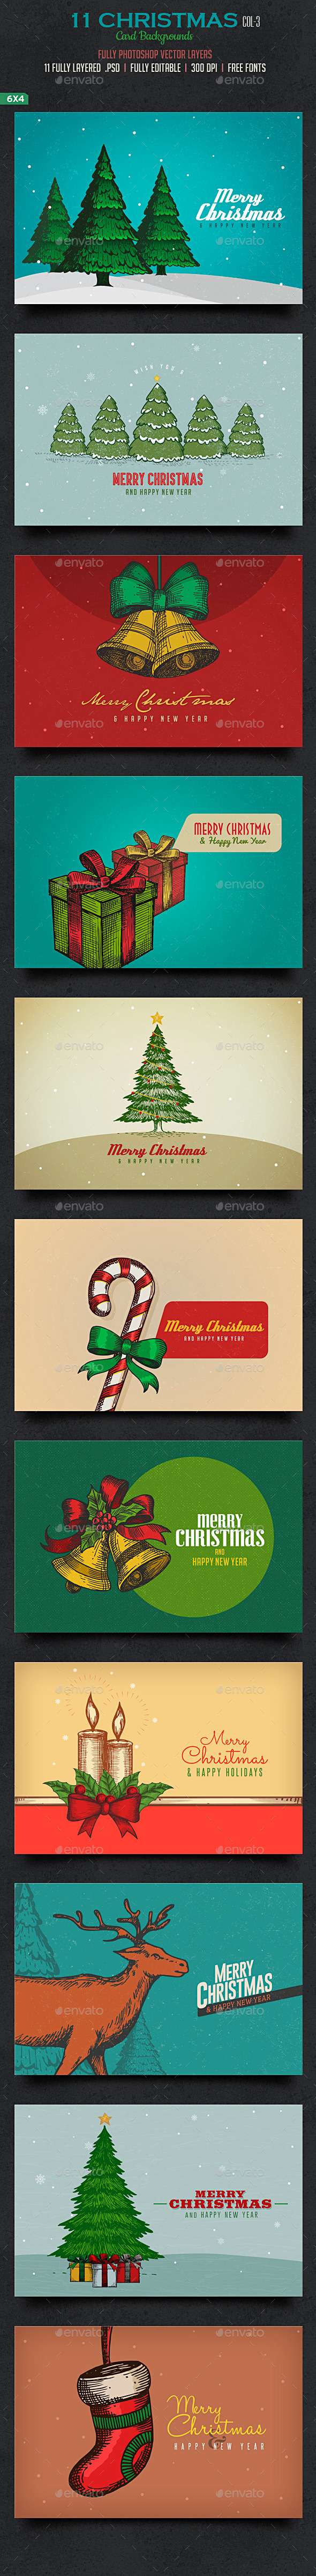 Christmas Card/Backgrounds -Col3